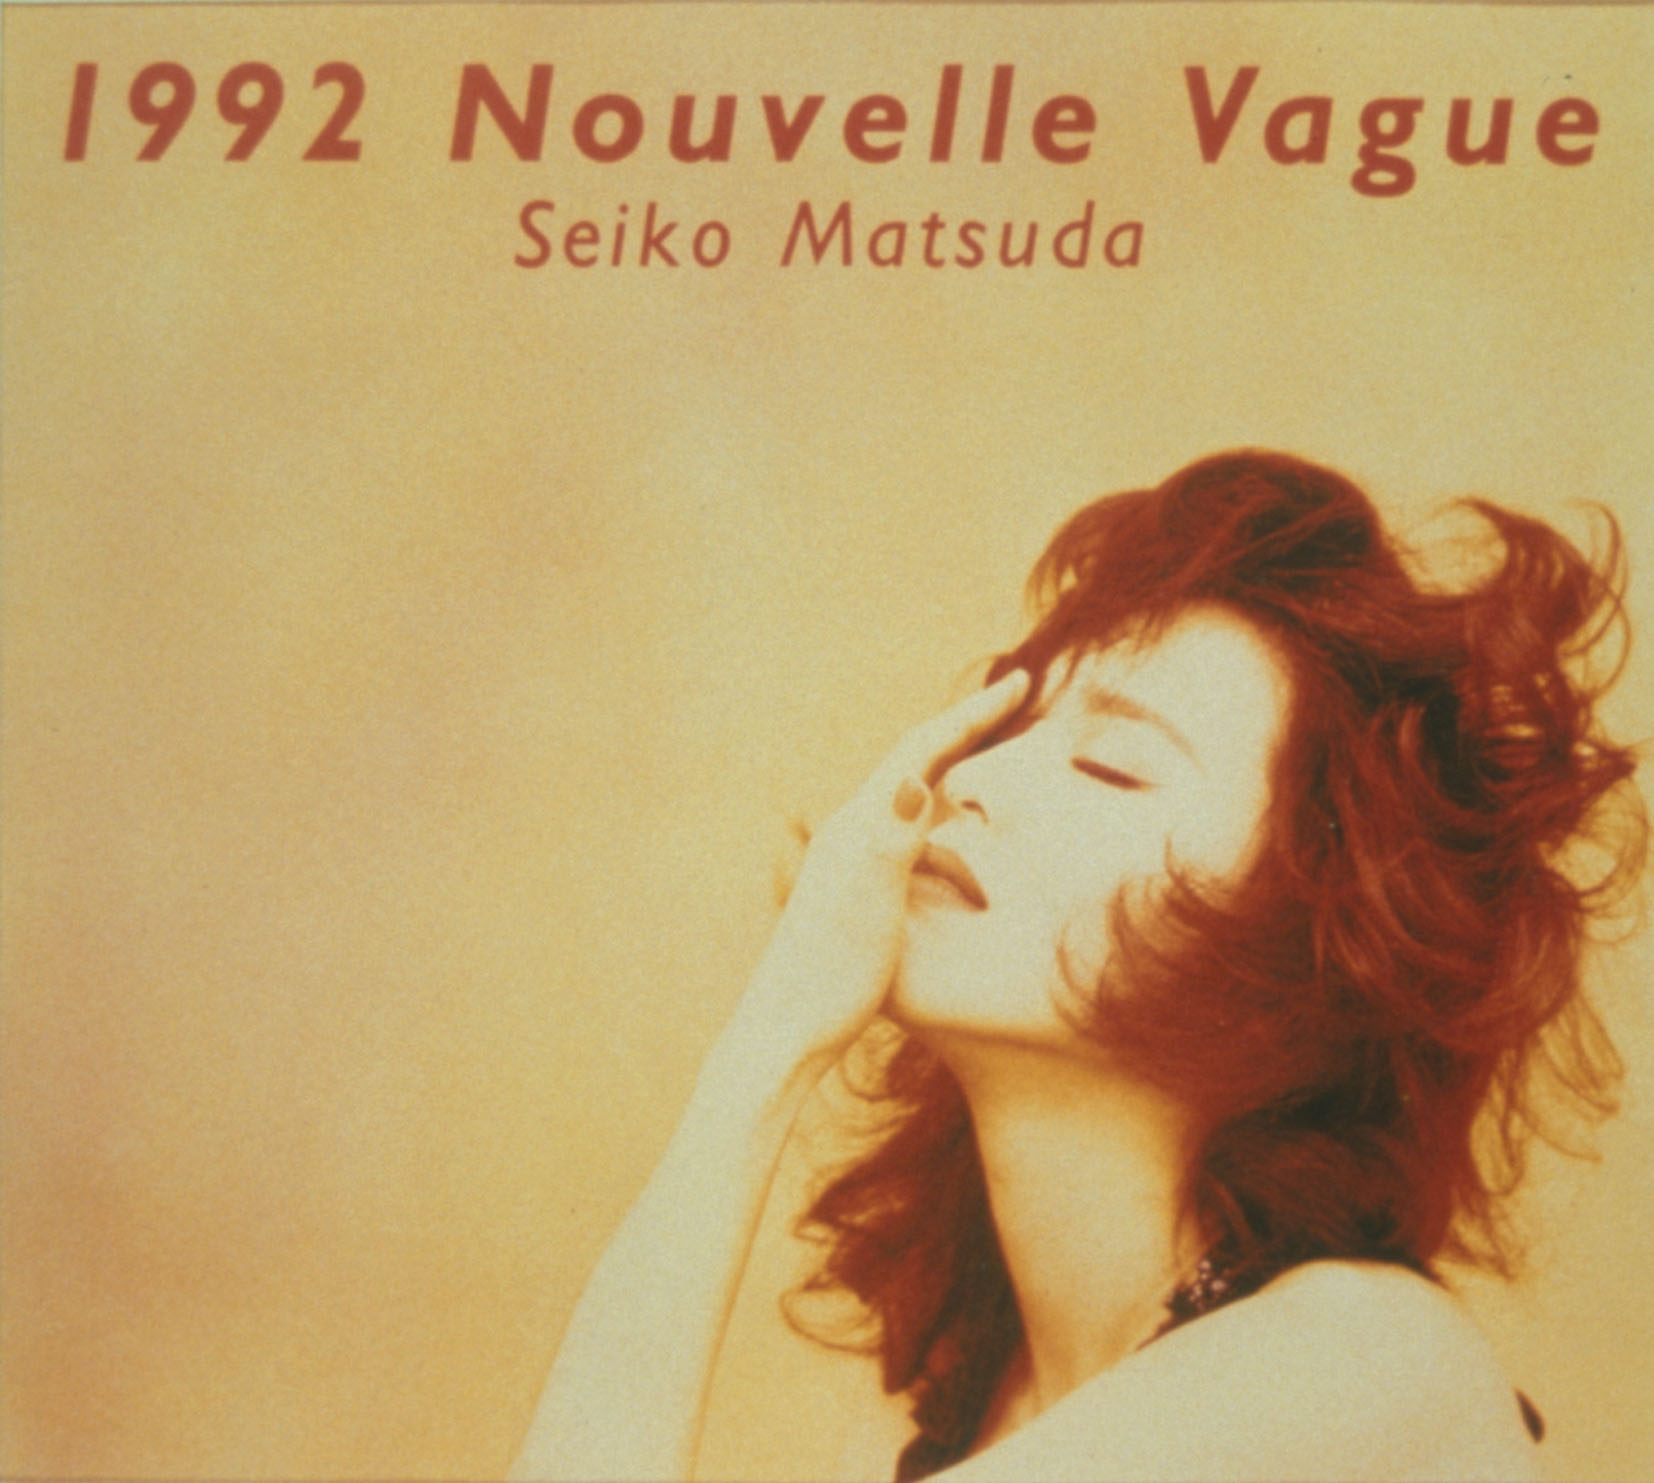 1992 Nouvelle Vague・松田 聖子...